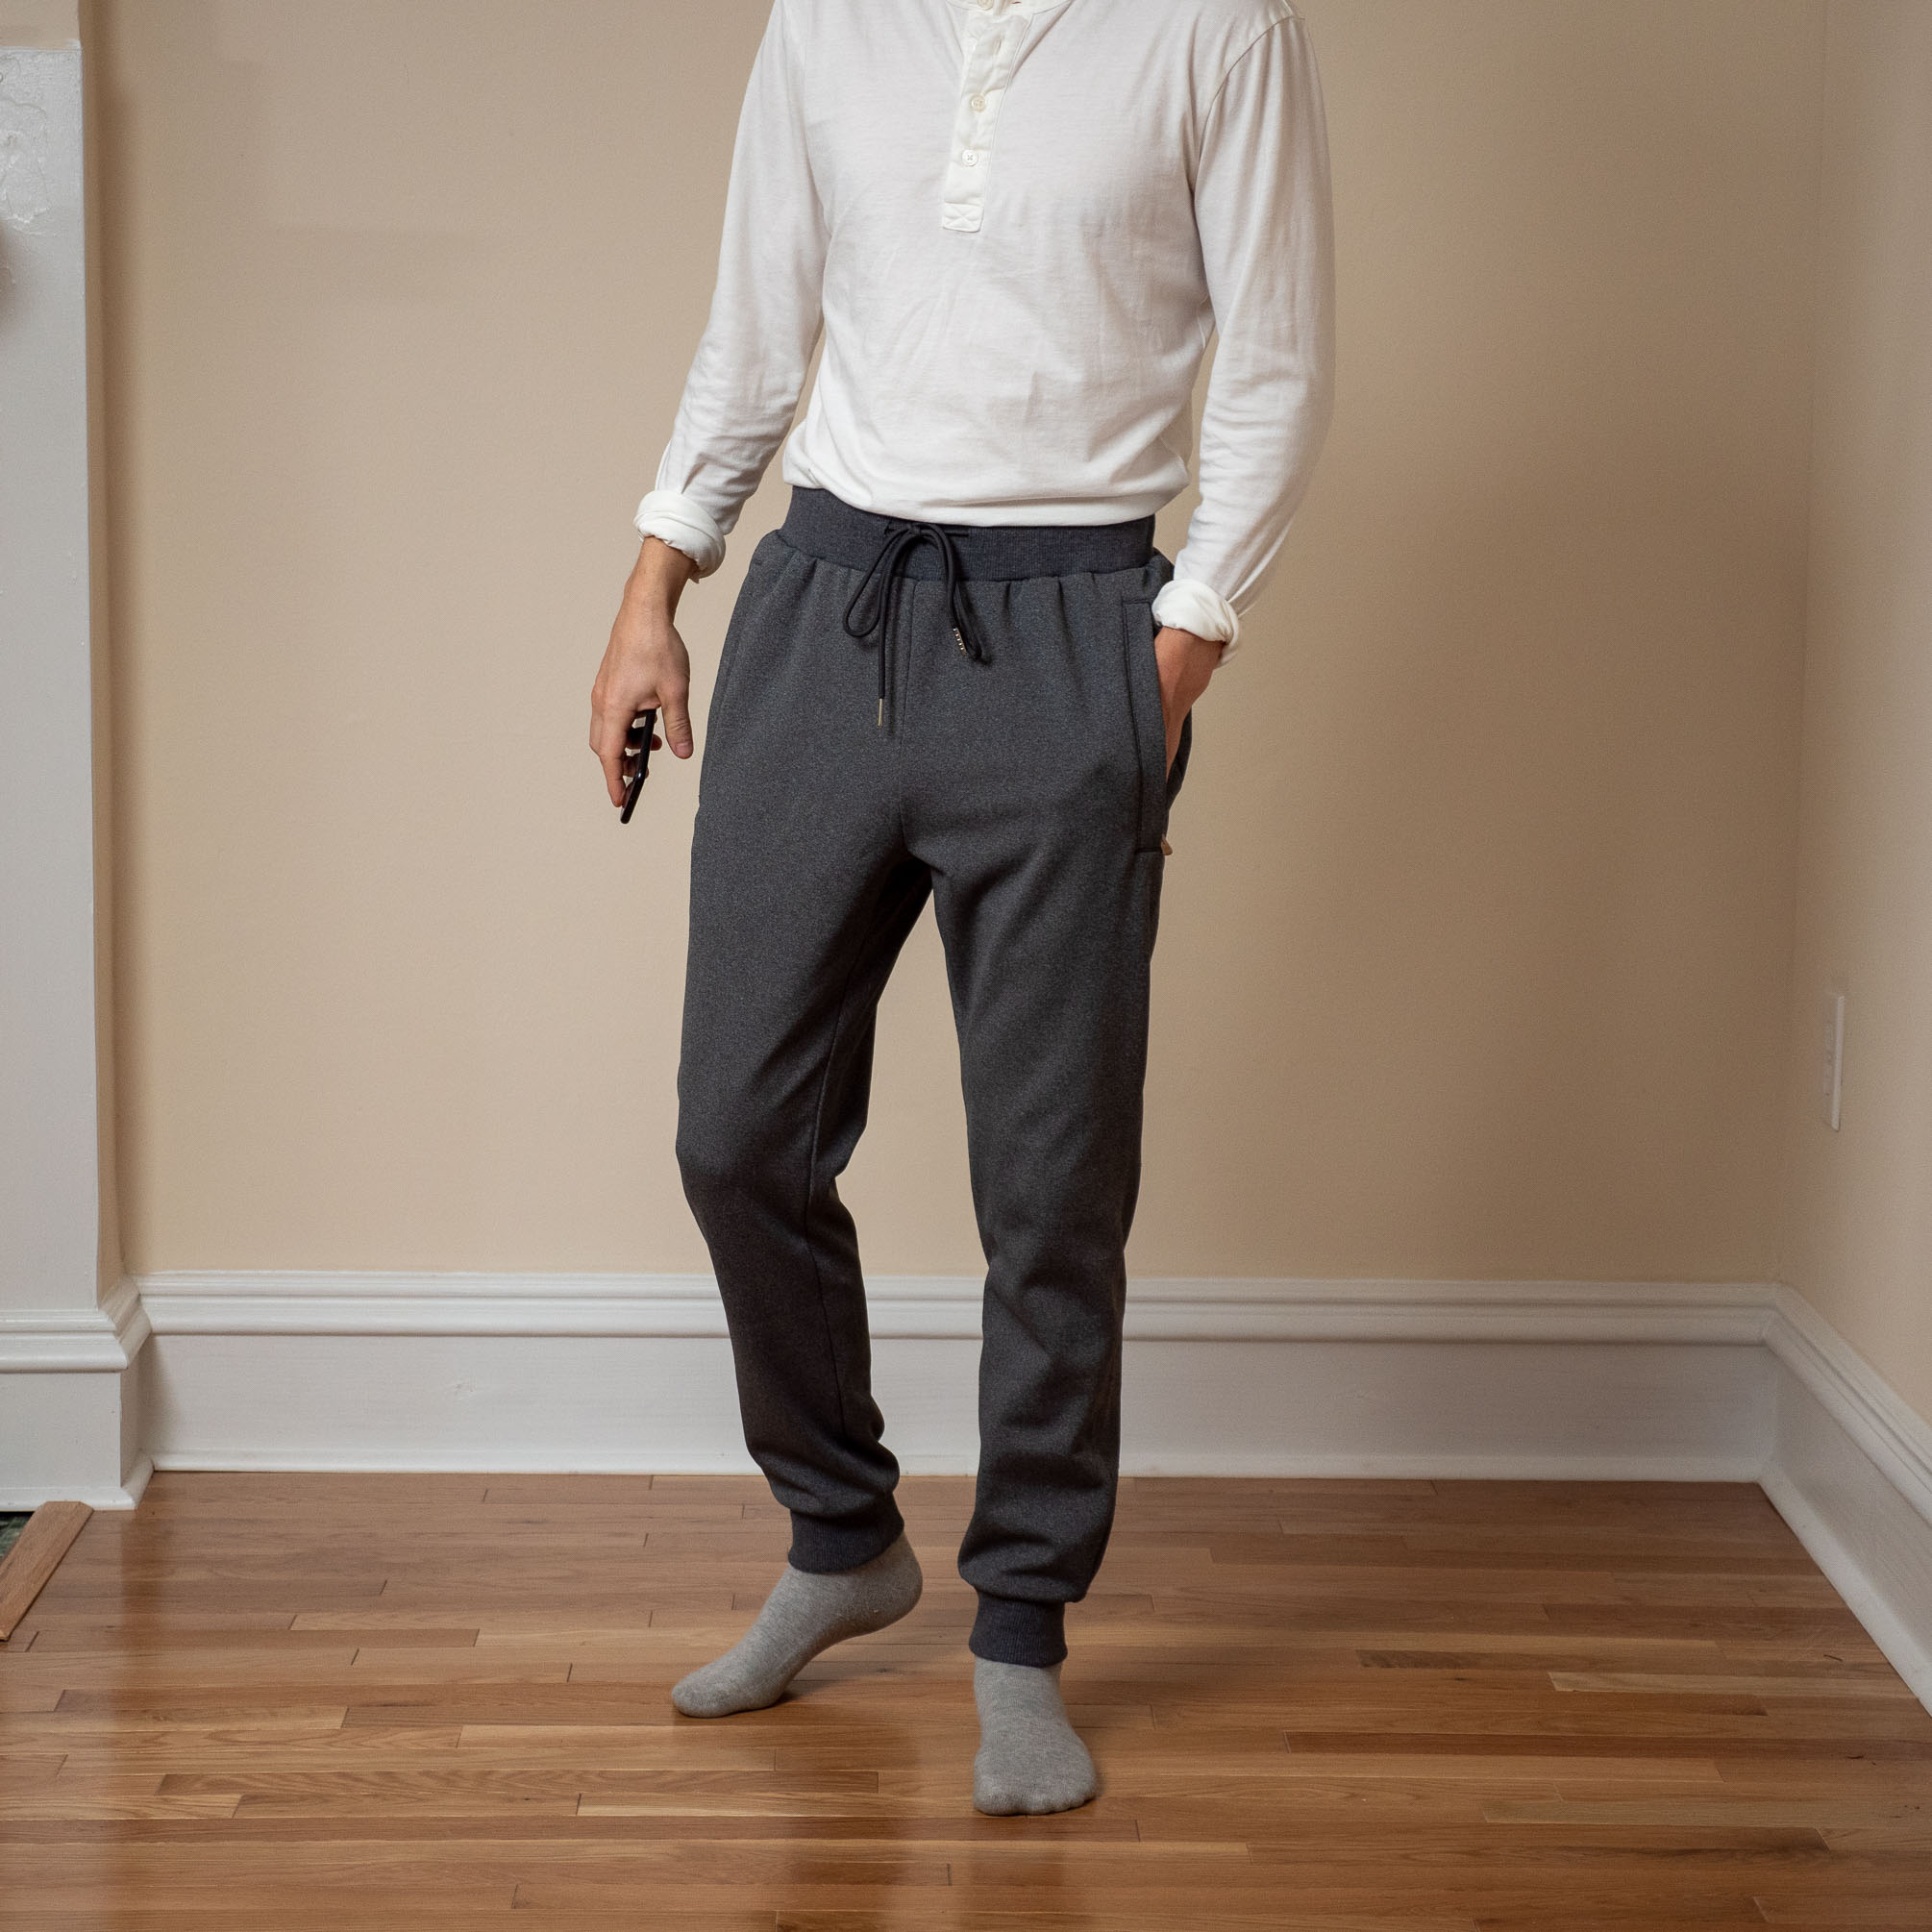 Where to Buy Joggers for Short Men Hands On Review